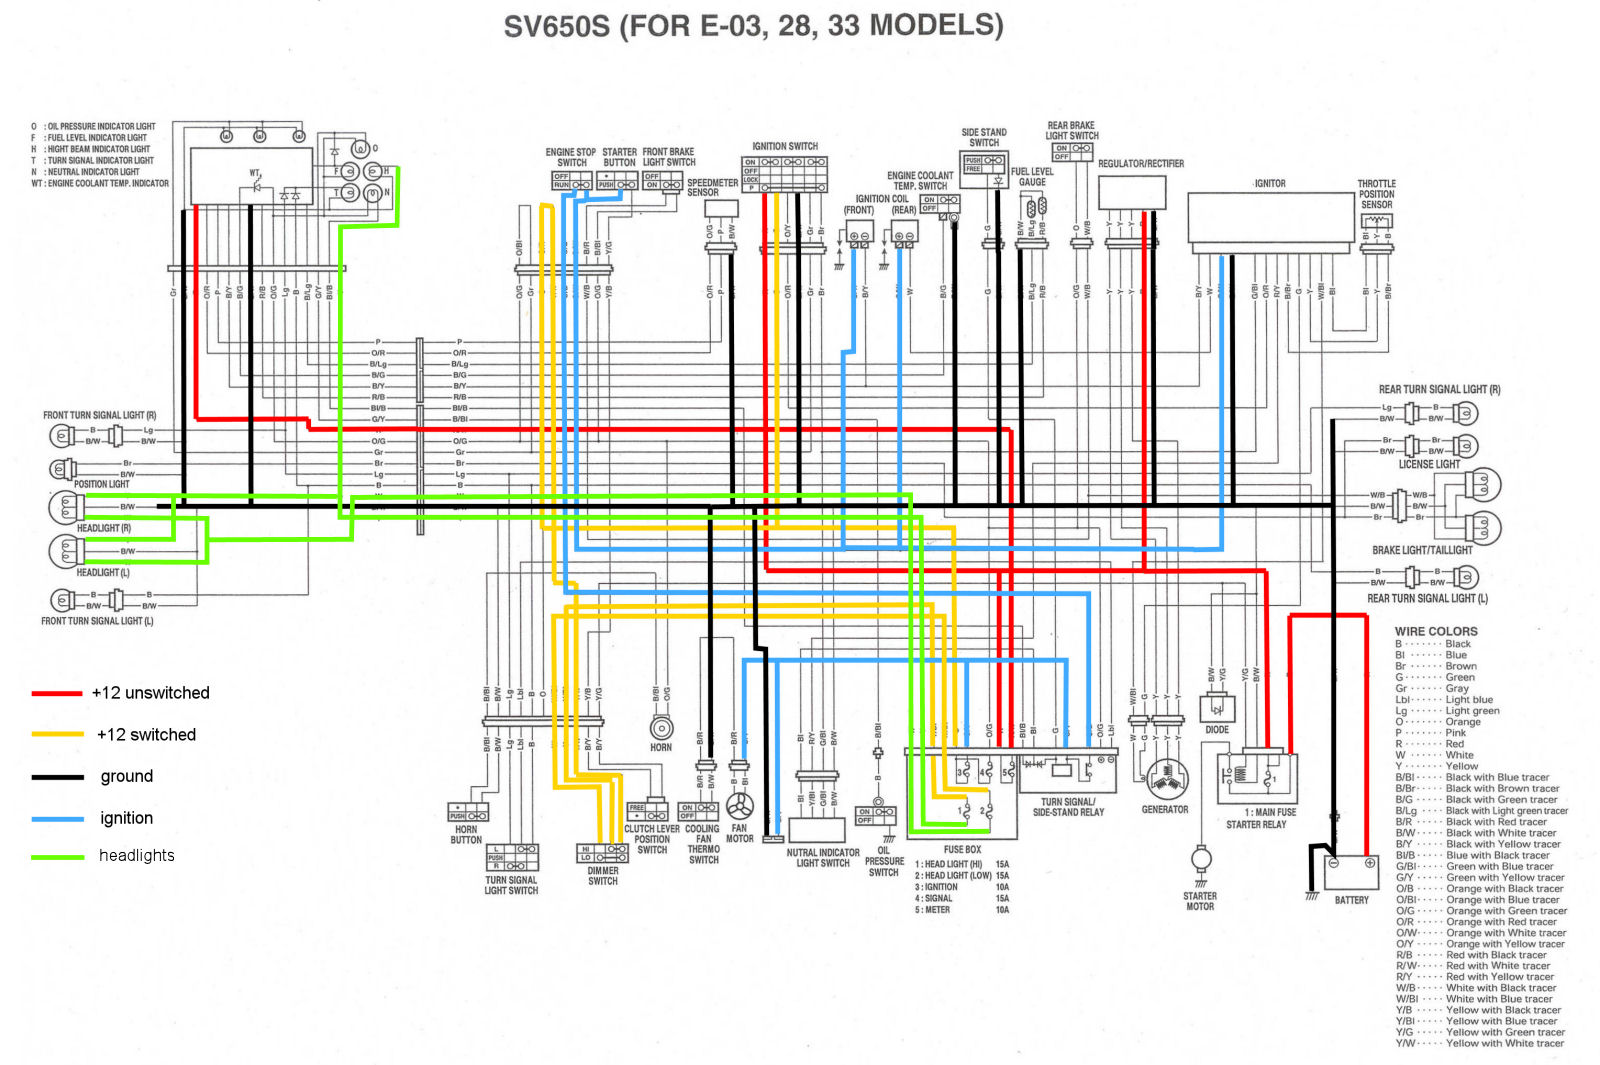 2003 Suzuki Sv650s Wiring Diagram - Wiring Diagrams relax chart -  chart.quado.itchart.quado.it